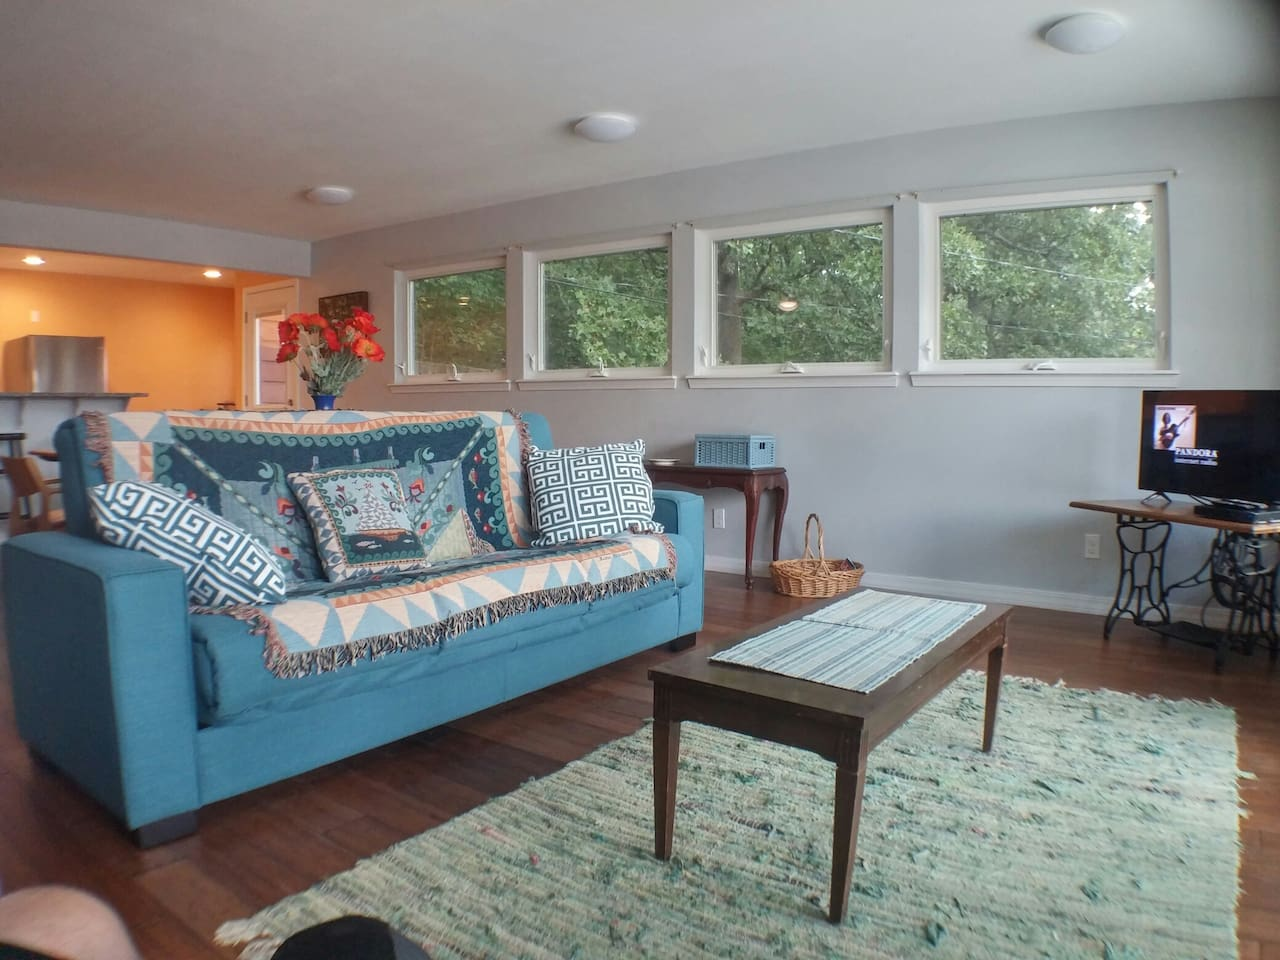 Relax on the comfortable sleeper sofa while watching TV, Netflix or enjoying the VIEW!!